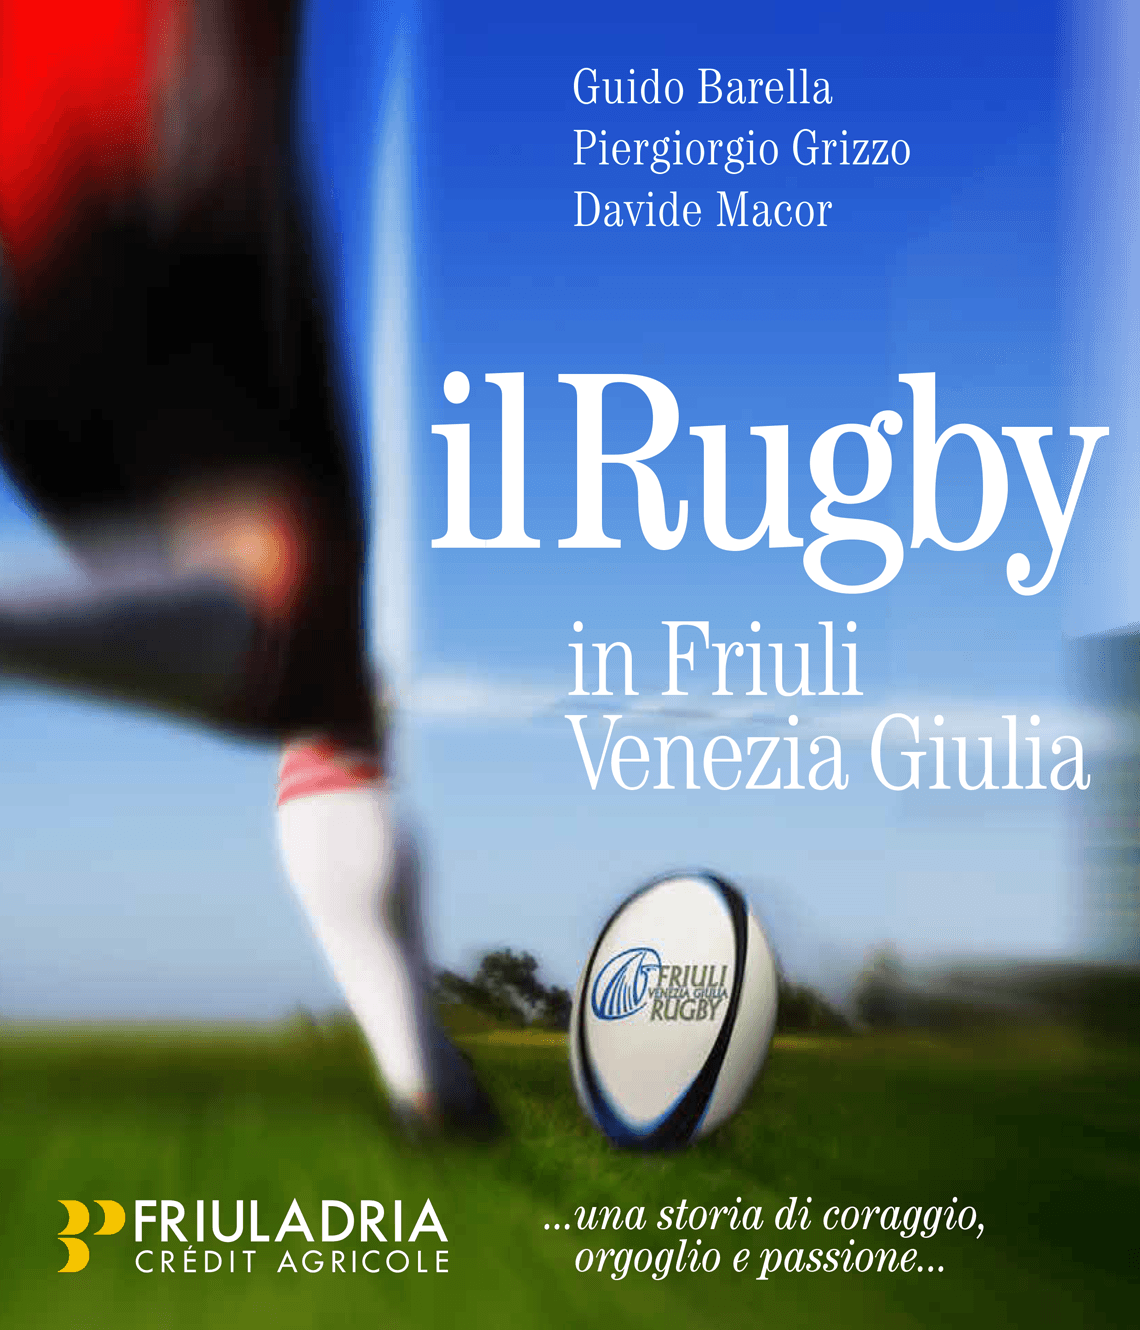 Libro Rugby Il Libro Rugby Udine Union Fvg